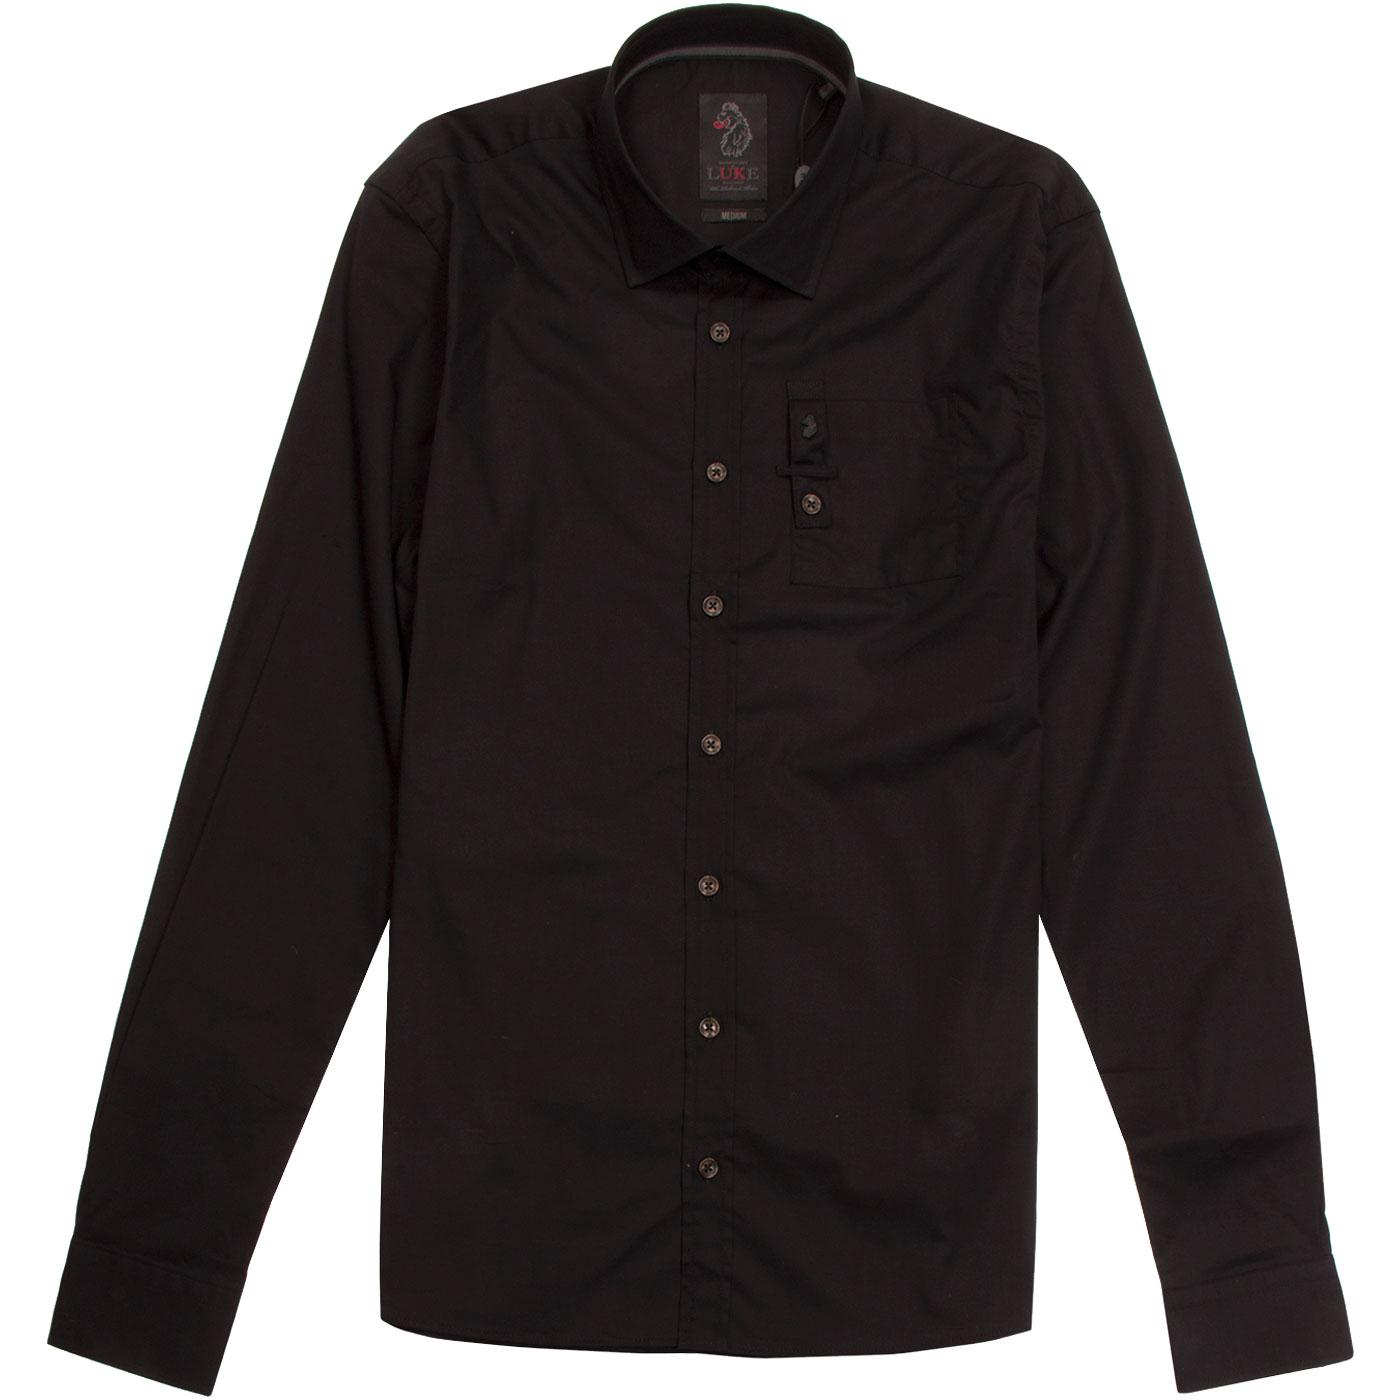 Stud Of The Wood LUKE Men's Retro Pocket Shirt B